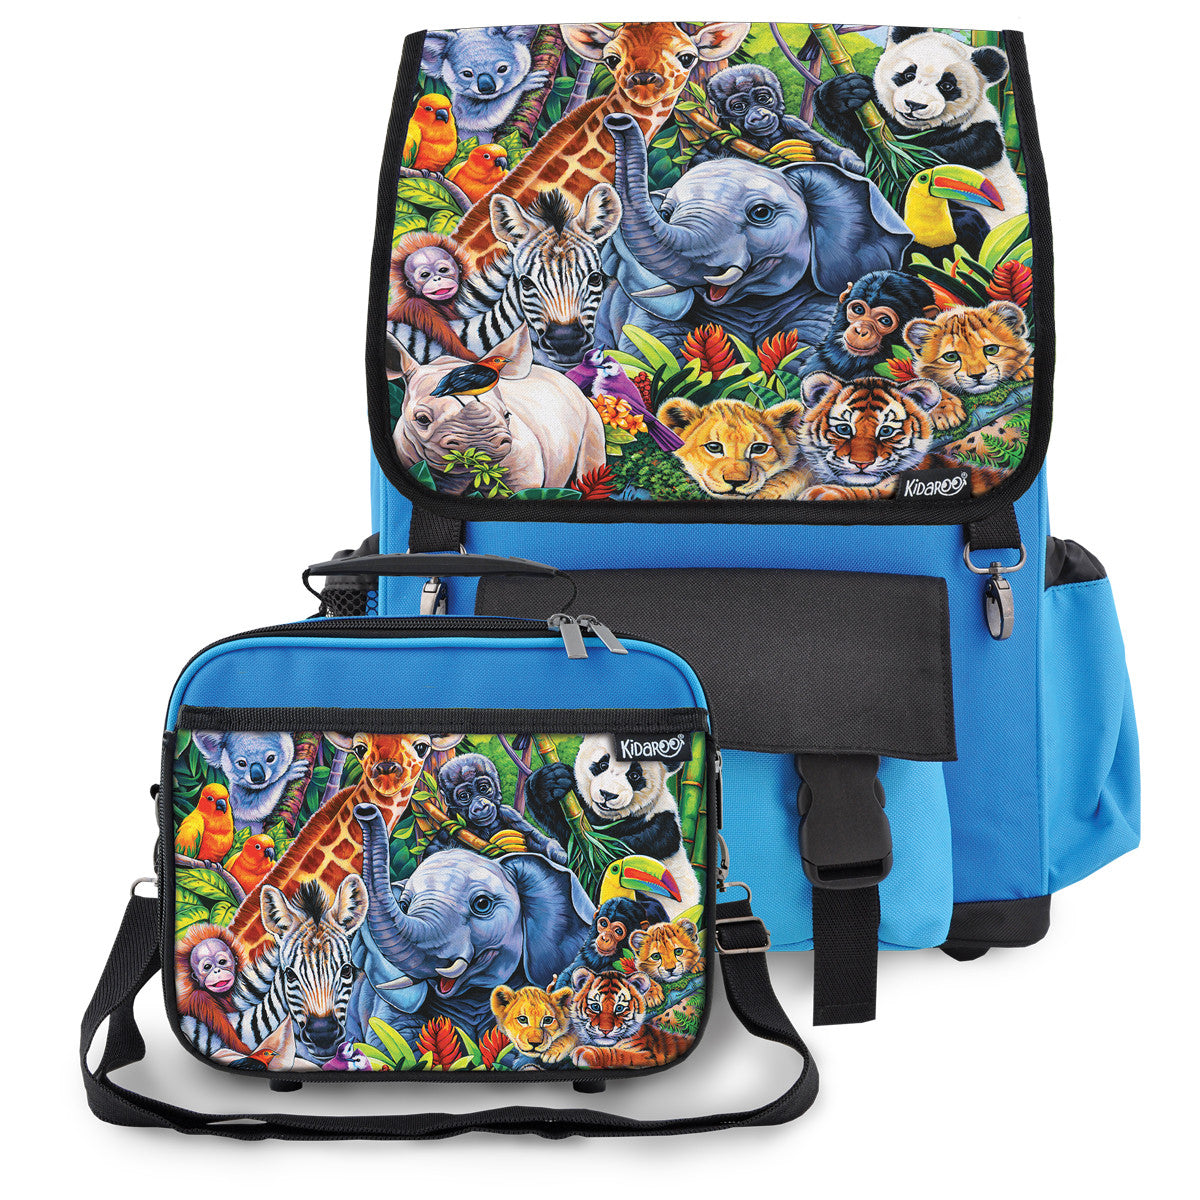 Kidaroo Blue Jungle Blue School Backpack & Lunchbox Set for Boys, Girls, Kids